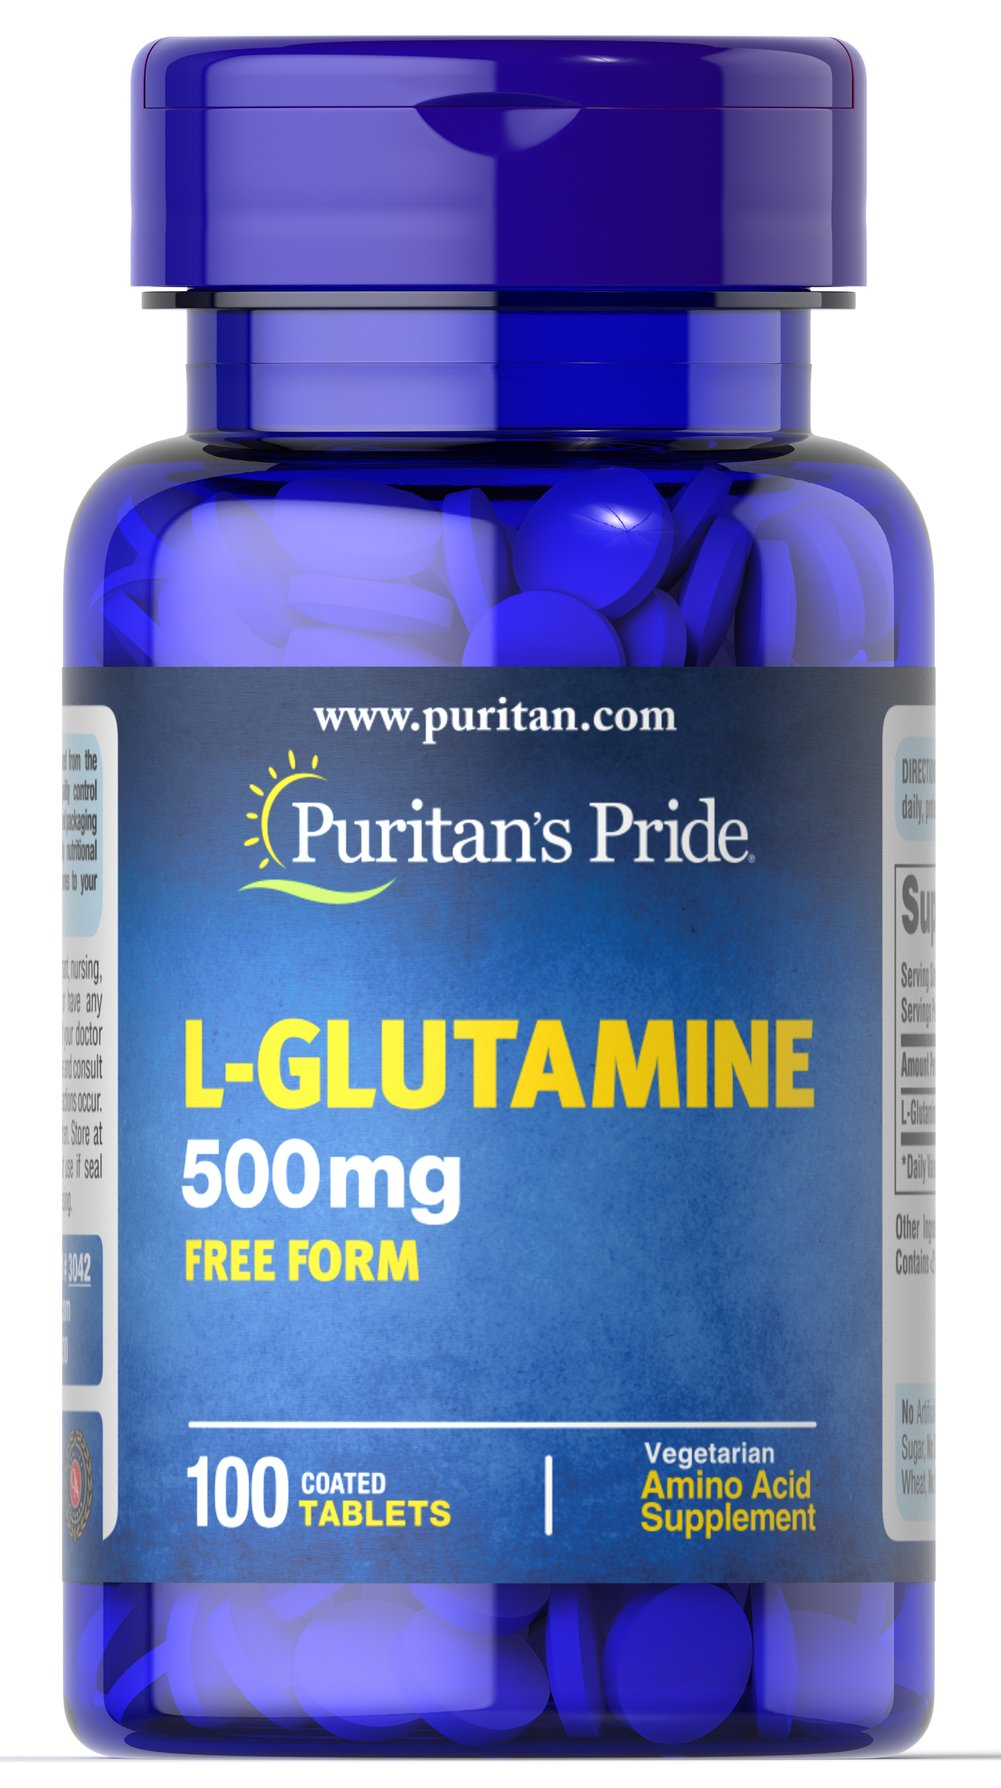 L-Glutamine 500 mg <p>Popular with Bodybuilders</p><p>Highly Concentrated in Muscle**</p><p>Exercise & Post-Exercise Support**</p><p>L-Glutamine is a popular supplement with bodybuilders and athletes  because it's an important part of any hardcore training regimen. Glutamine is a truly unique amino acid, as it is the most abundant amino acid in blood and skeletal muscle. Intense exercise promotes glutamine formation and release from muscle.**